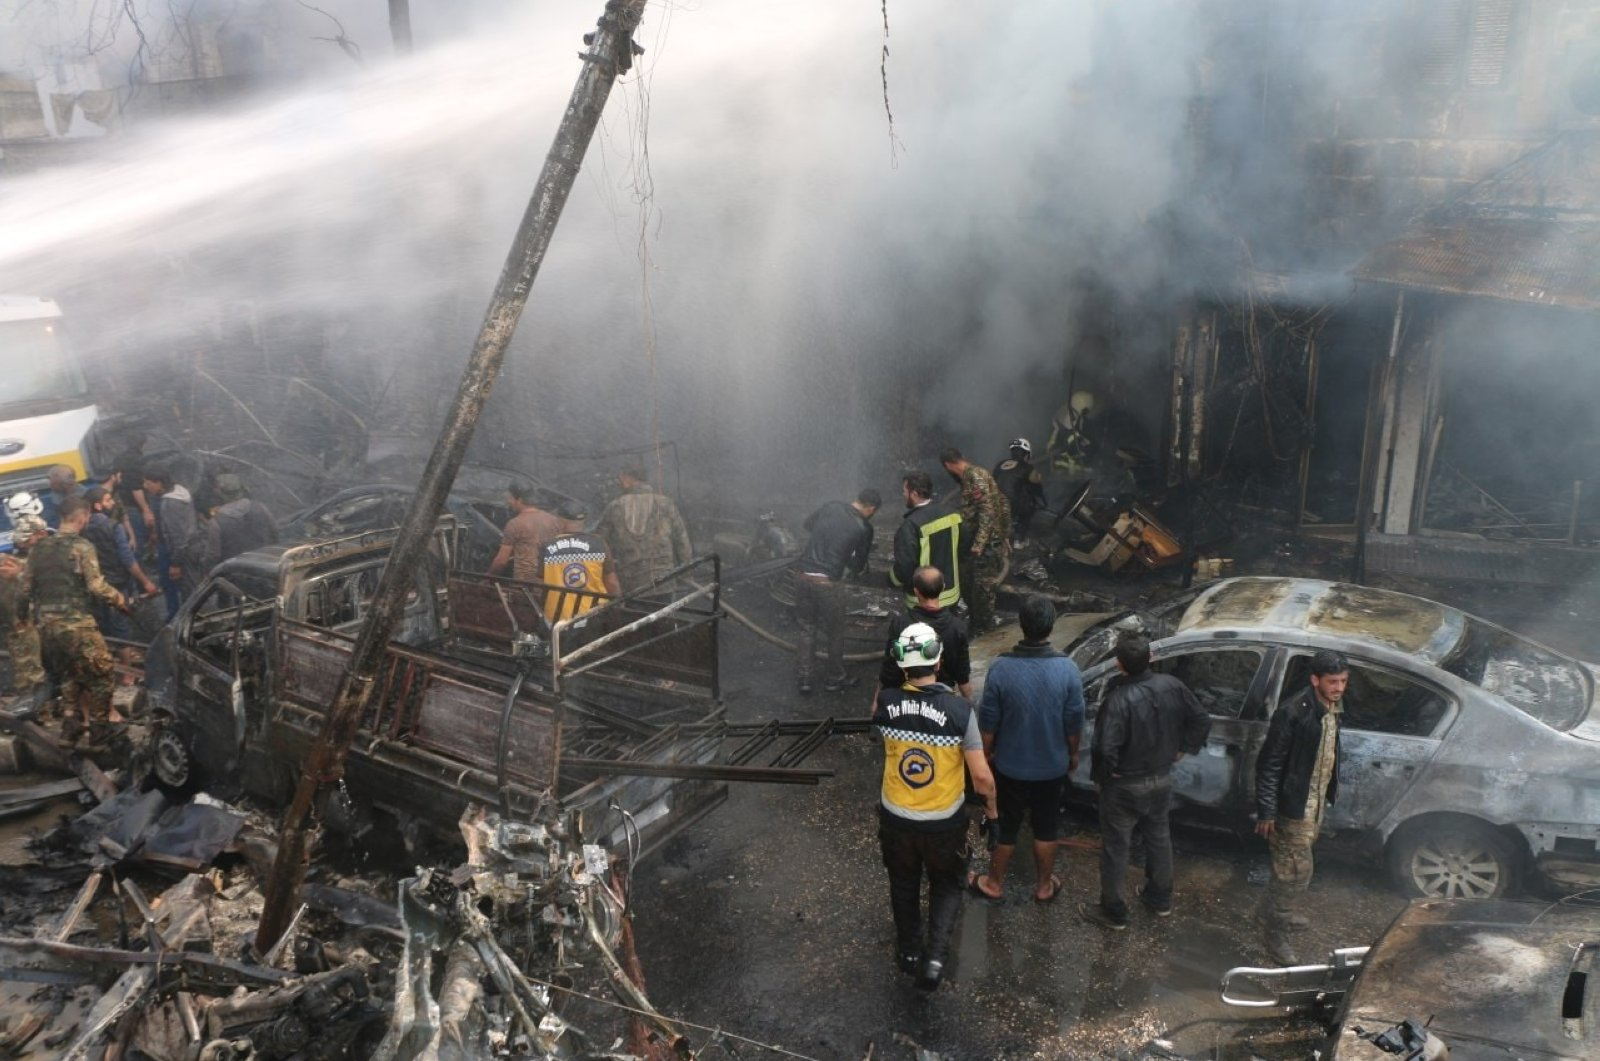 Civil rescue workers work among the burned cars and rubble following the YPG/PKK terrorist attack in Afrin, northwestern Syria, April 28, 2020. (IHA Photo)